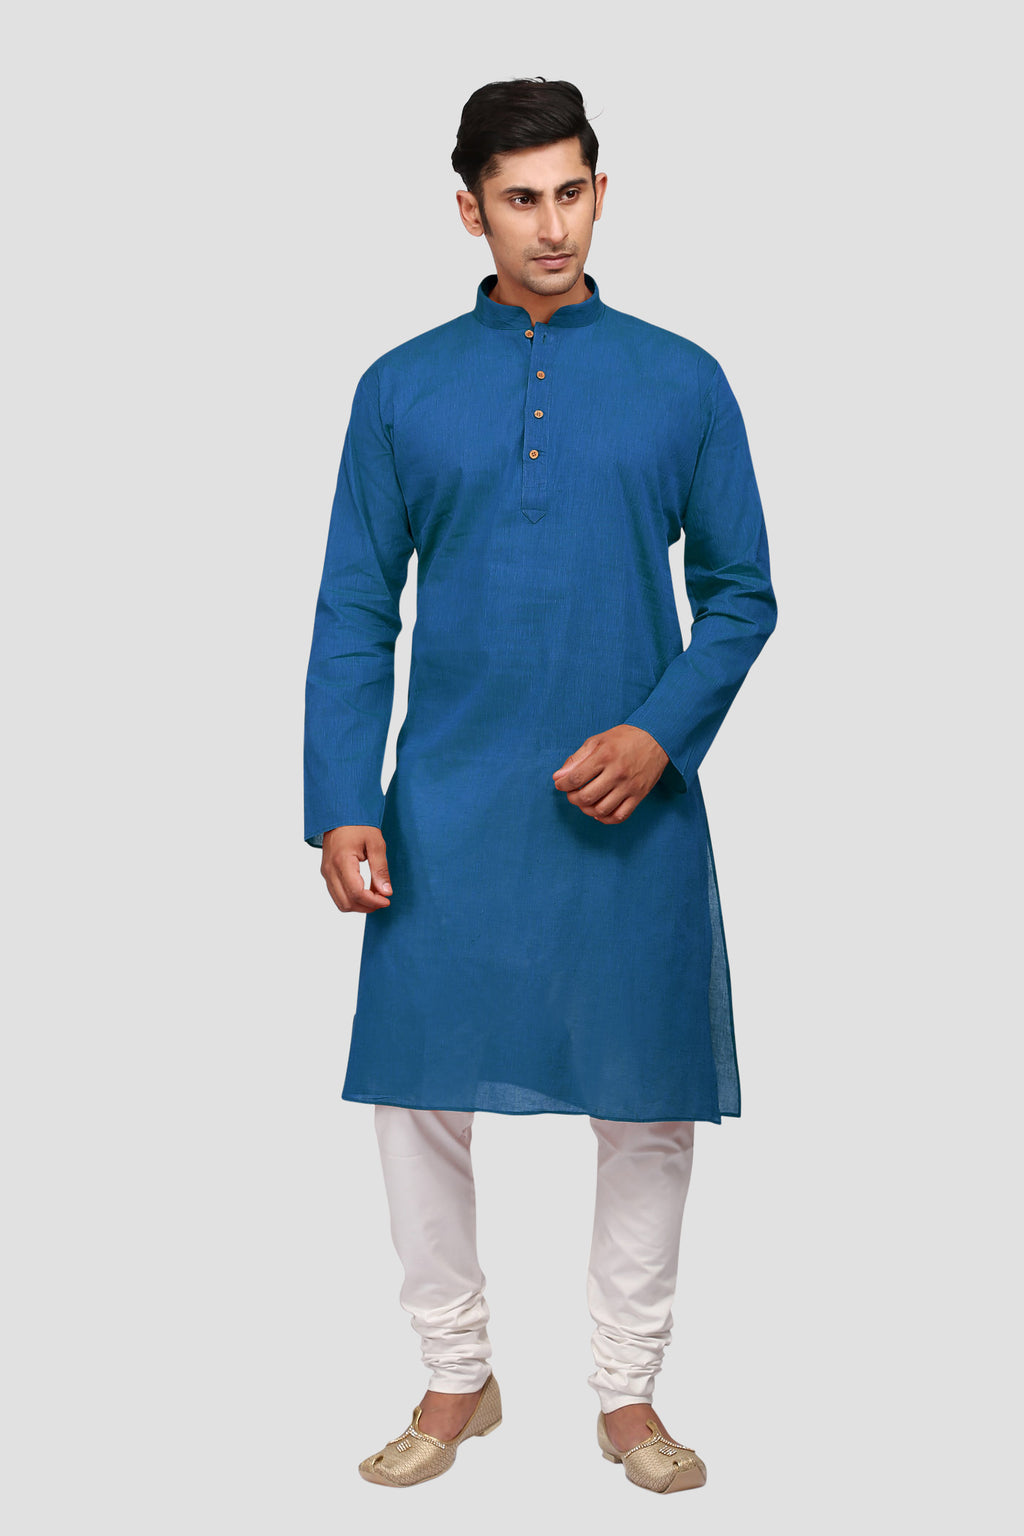 Ethniz - Men's Kurta with Churidar - True Blue